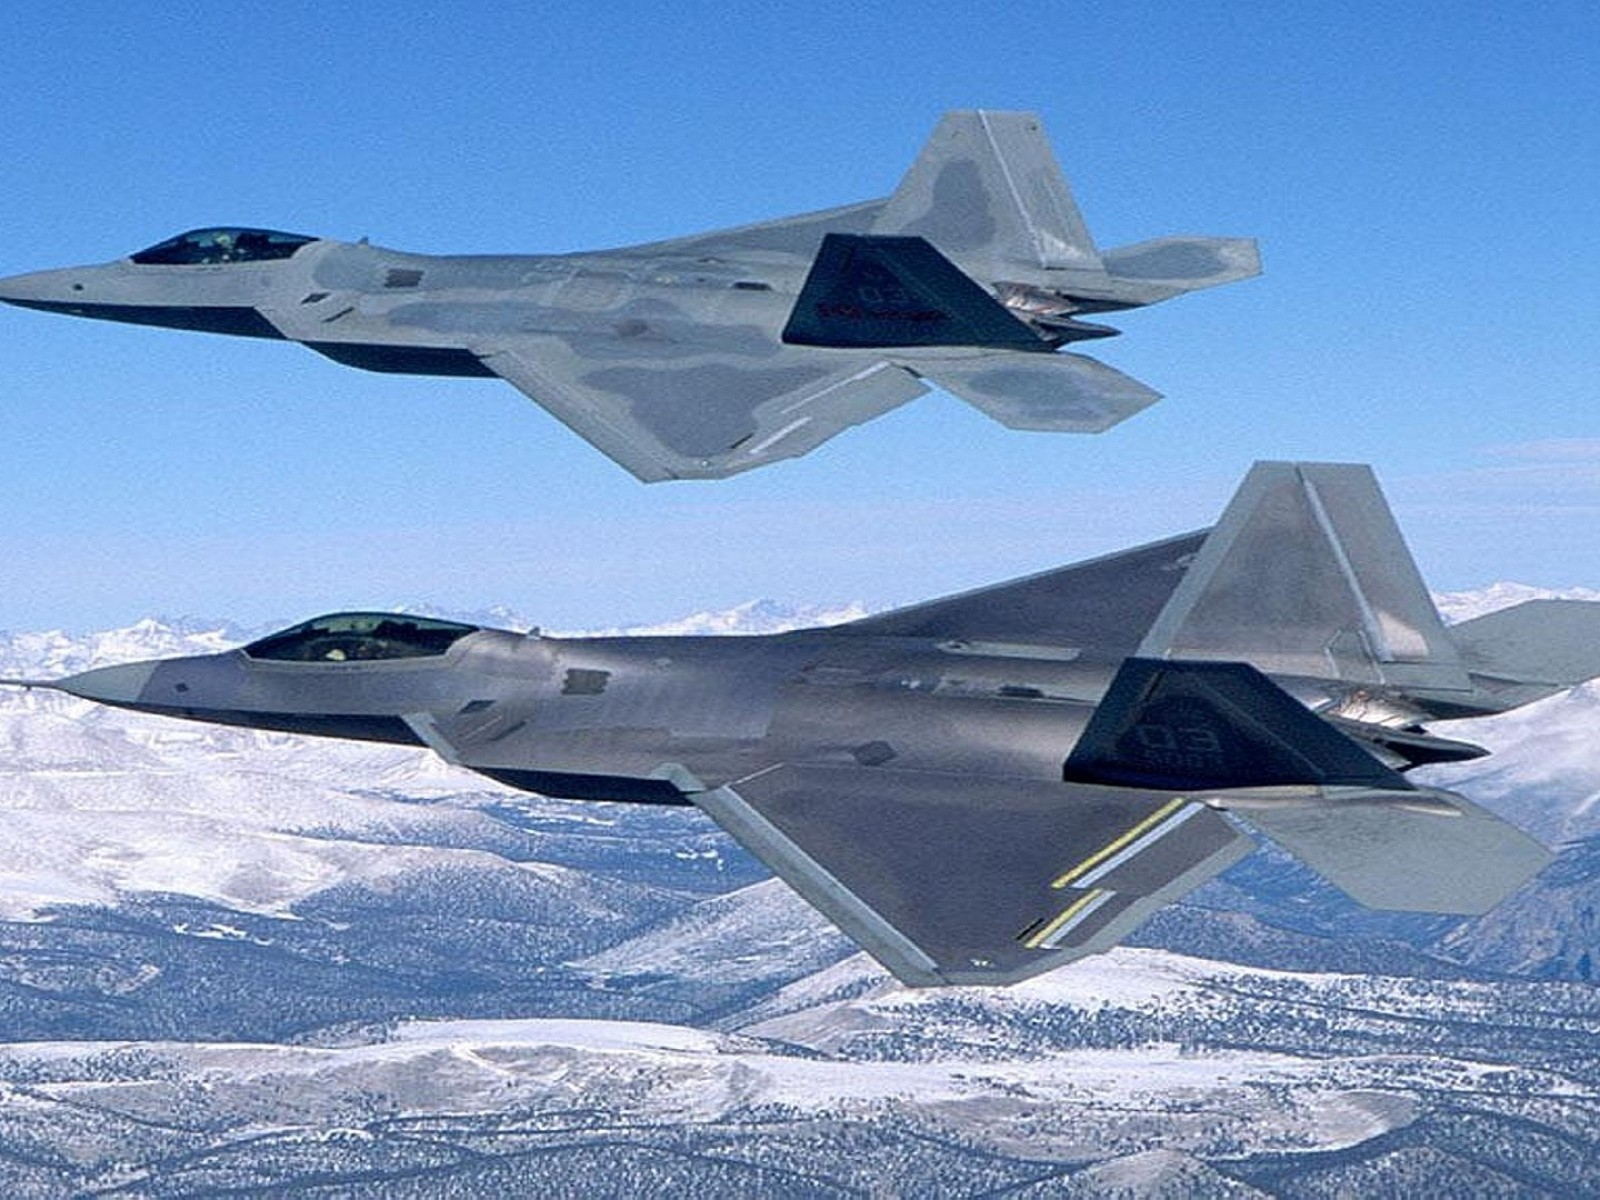 Martin F 22 Raptor Wallpaper Aircraft Wallpapers 5845 1600x1200